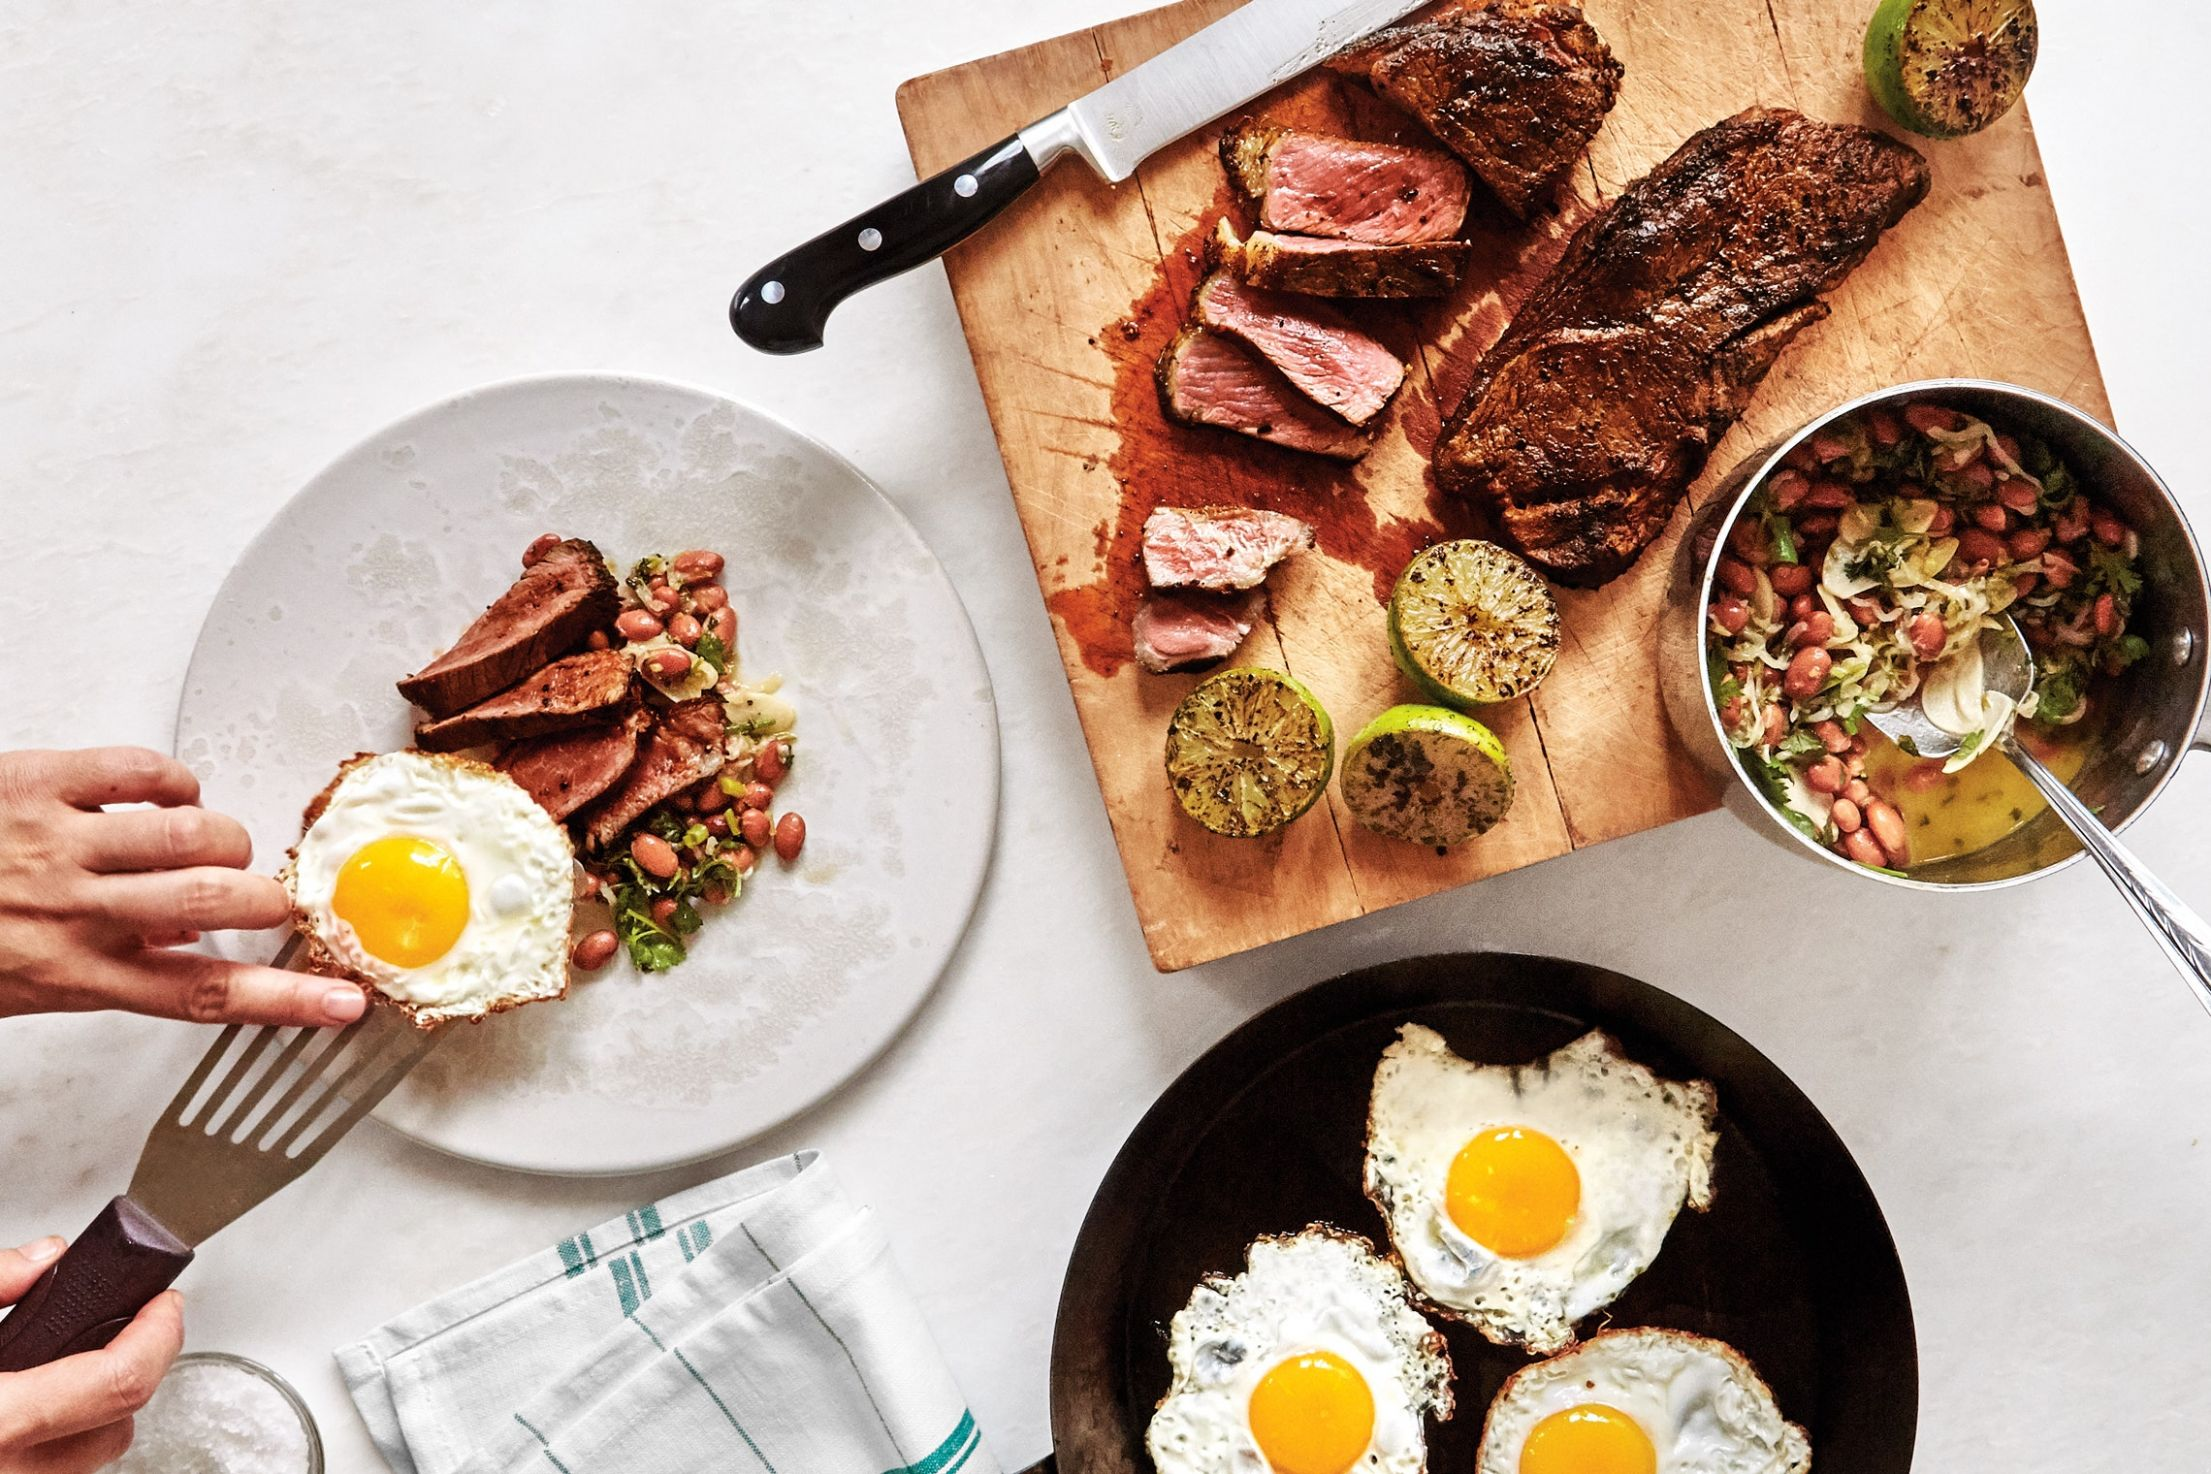 Recipes for Cooking at Home in the Time of Coronavirus | Bon Appétit